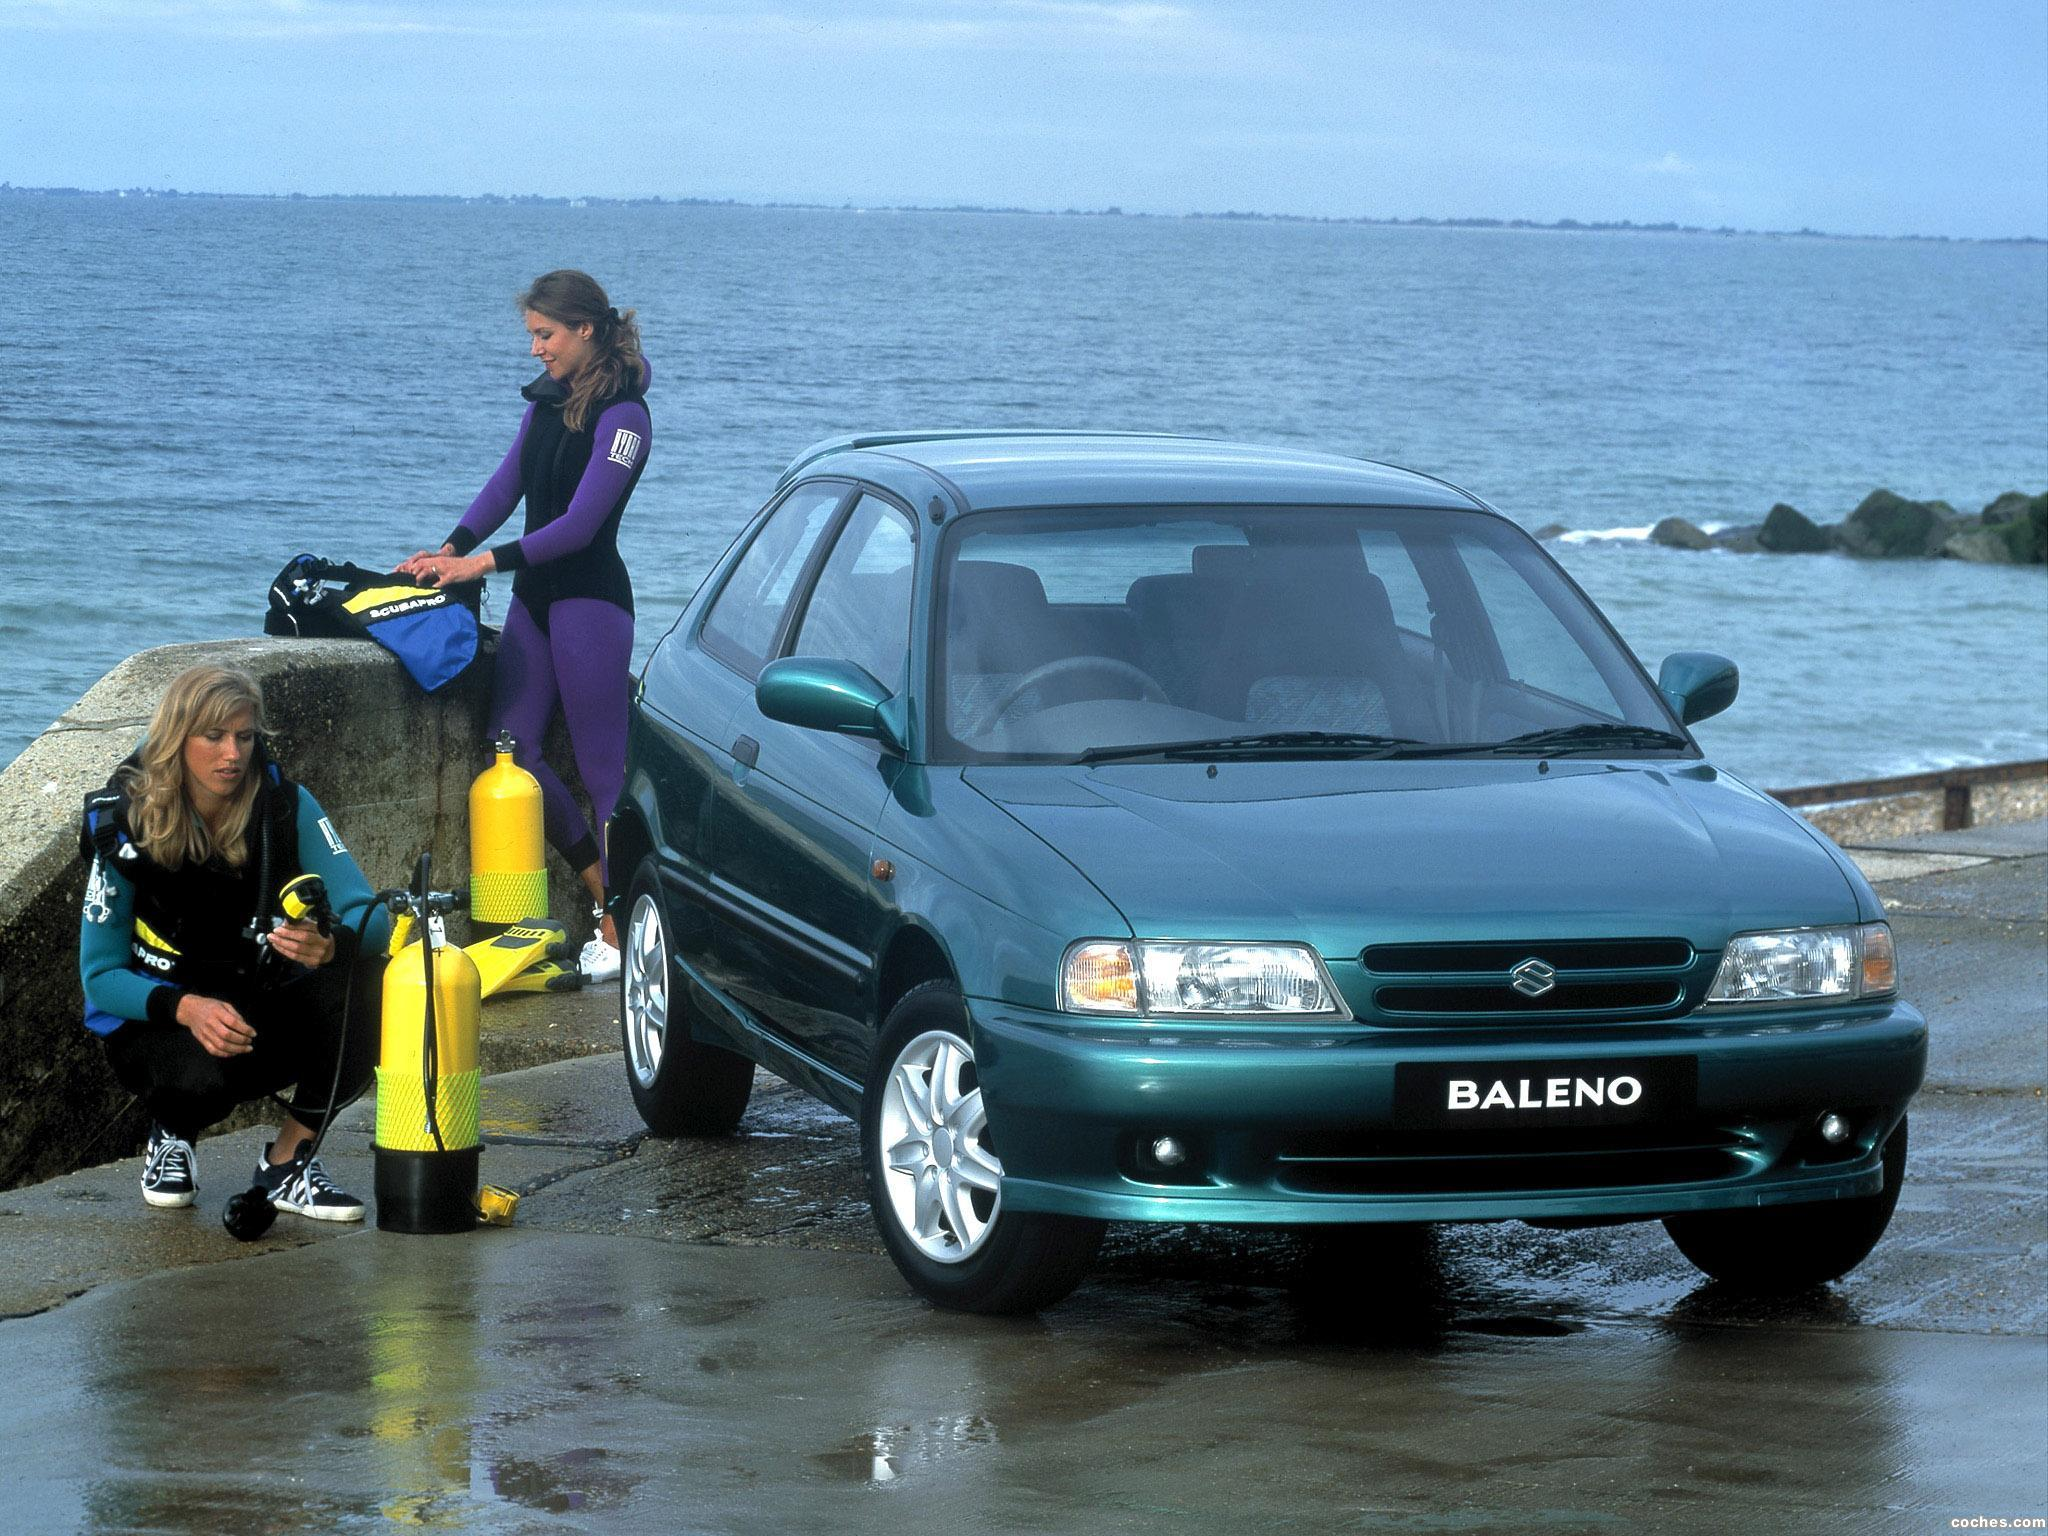 suzuki_baleno-hatchback-uk-1995-99_r1